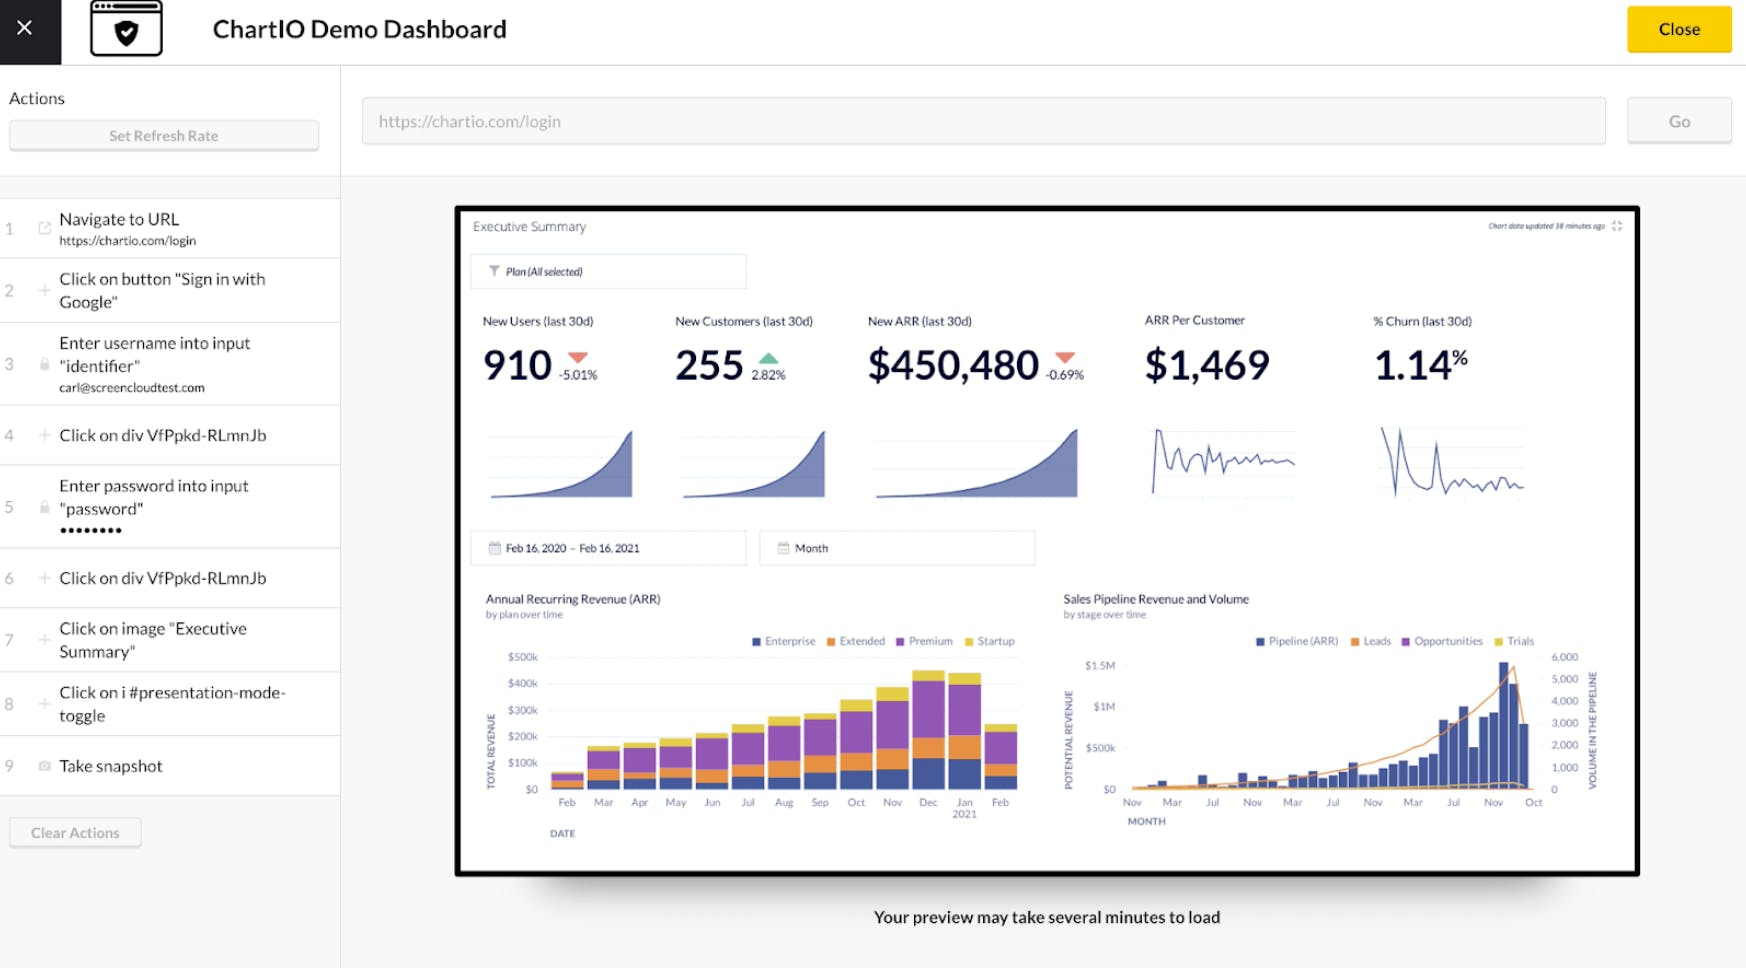 ScreenCloud Dashboards - Final preview 2.22.2021.png